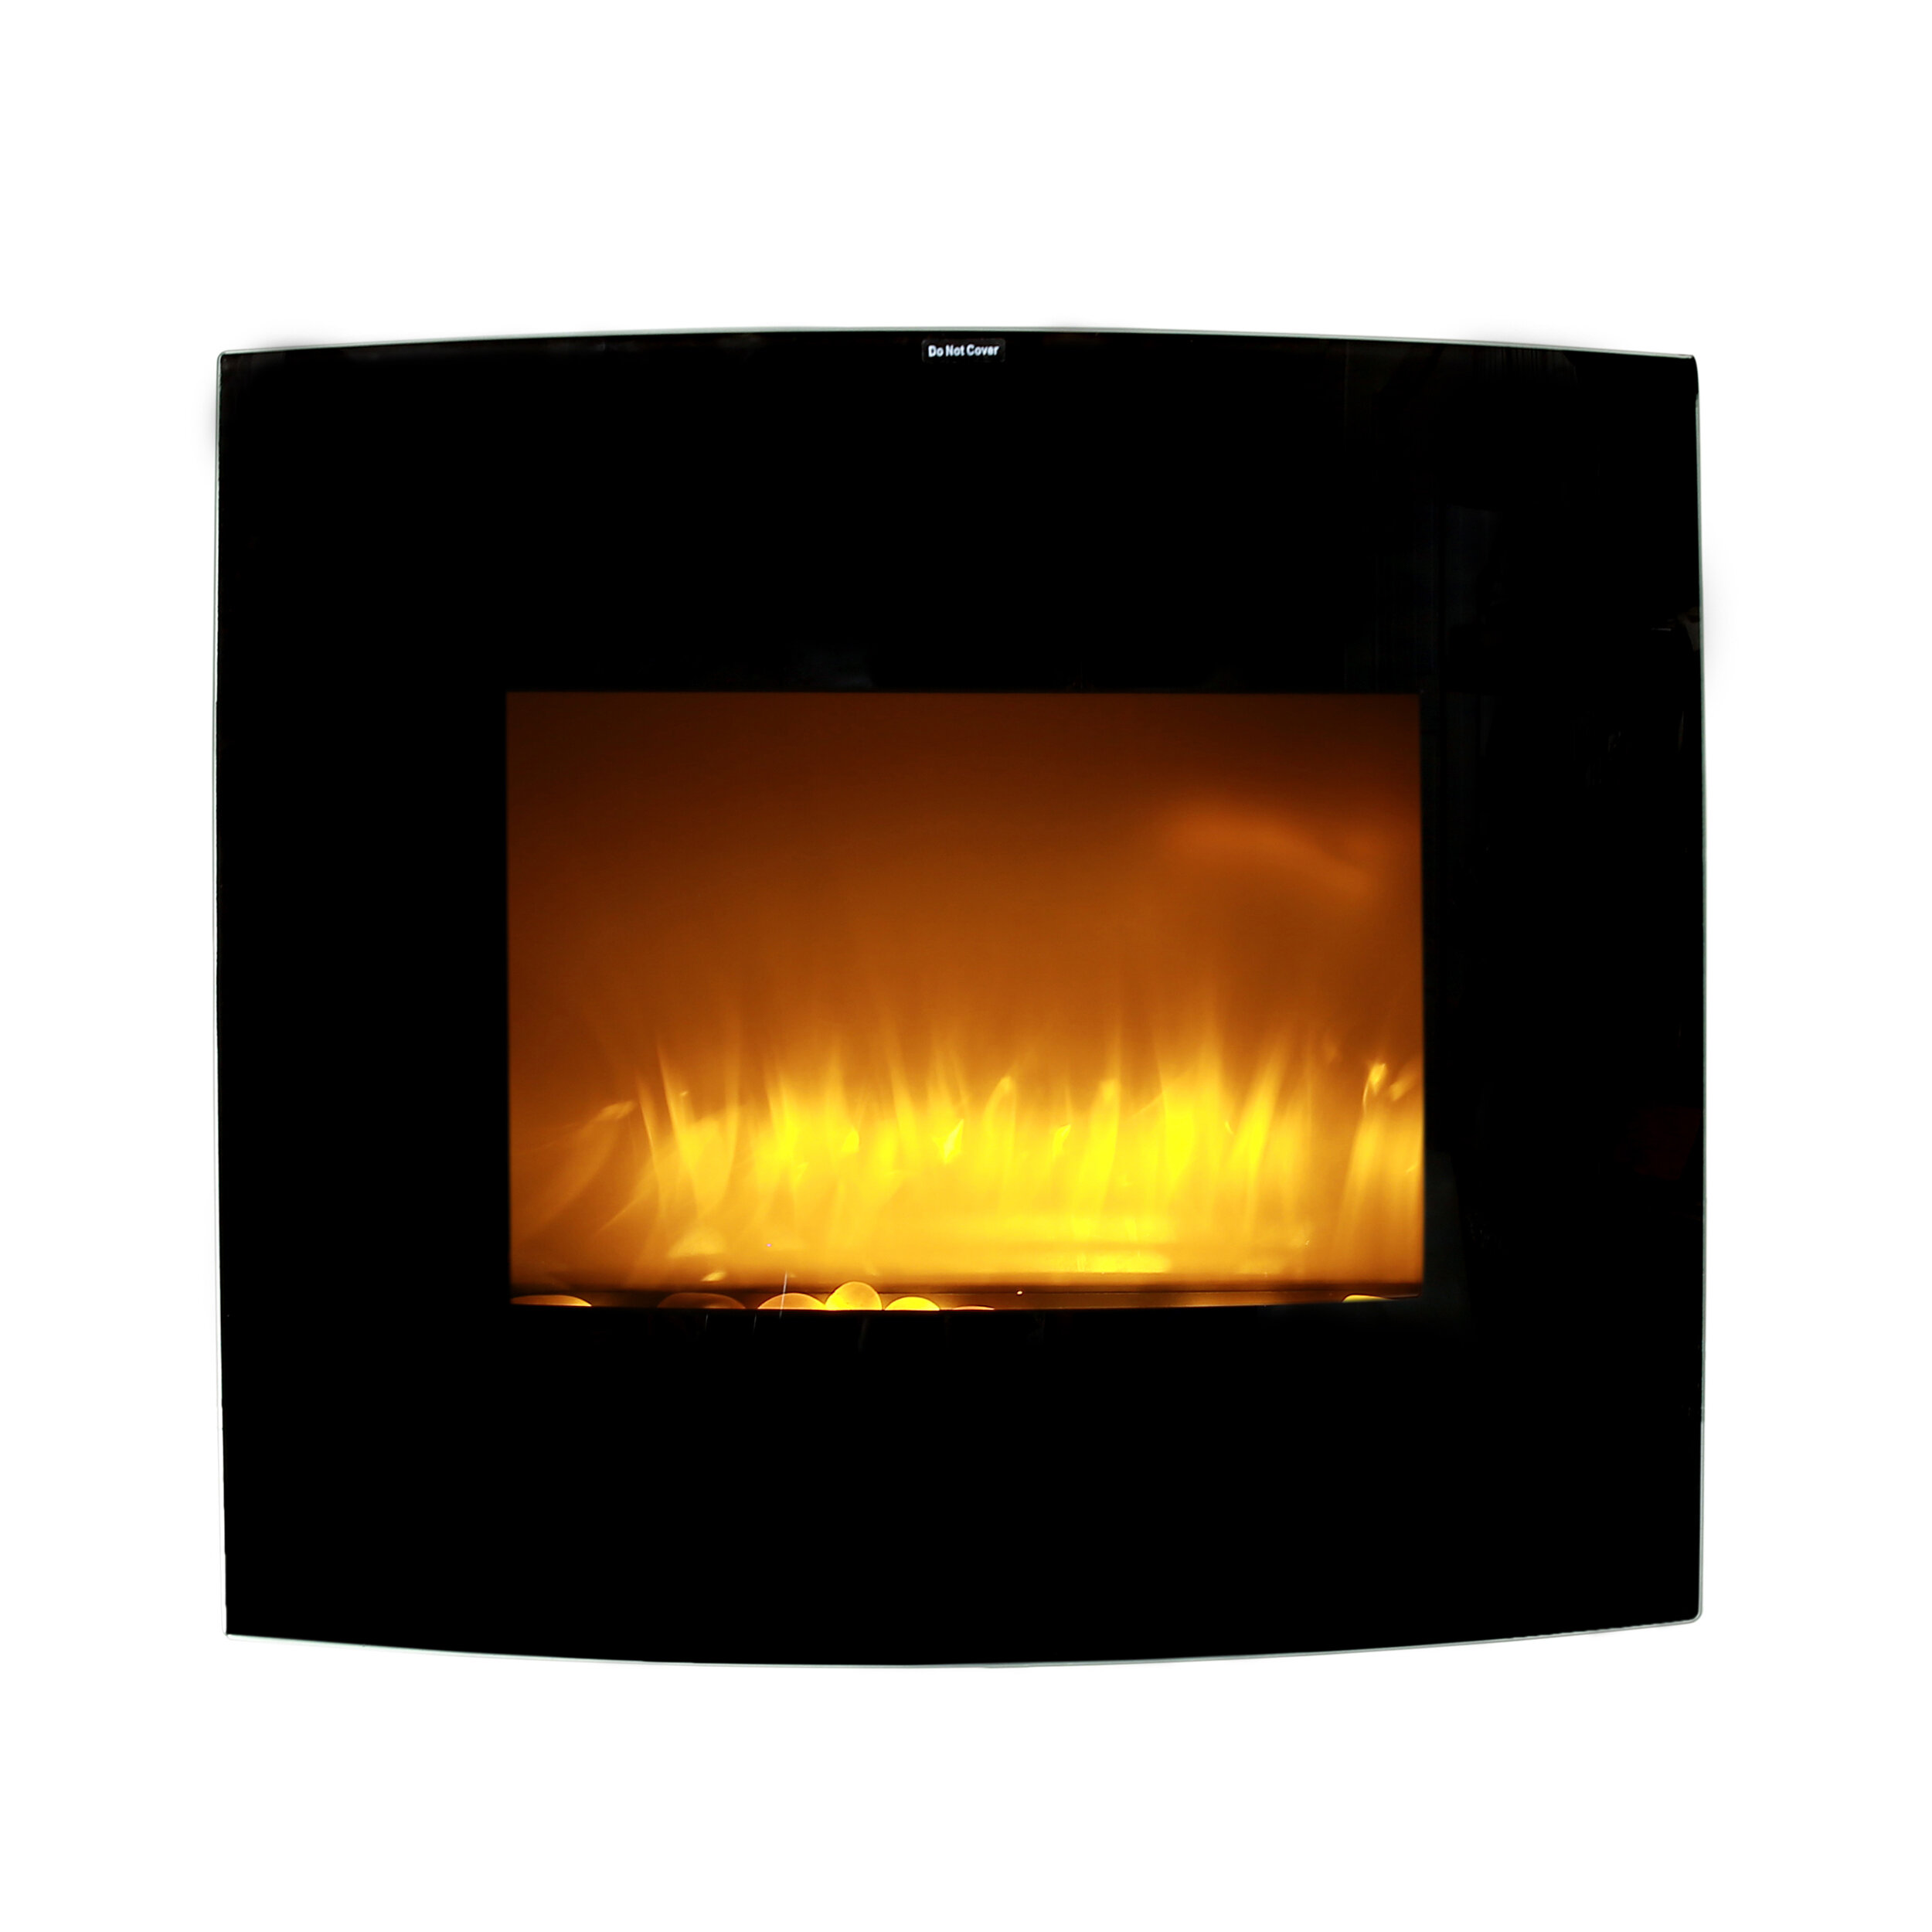 Extra Large 1 000 Sq Ft Plug In Electric Fireplaces Stoves You Ll Love In 2021 Wayfair